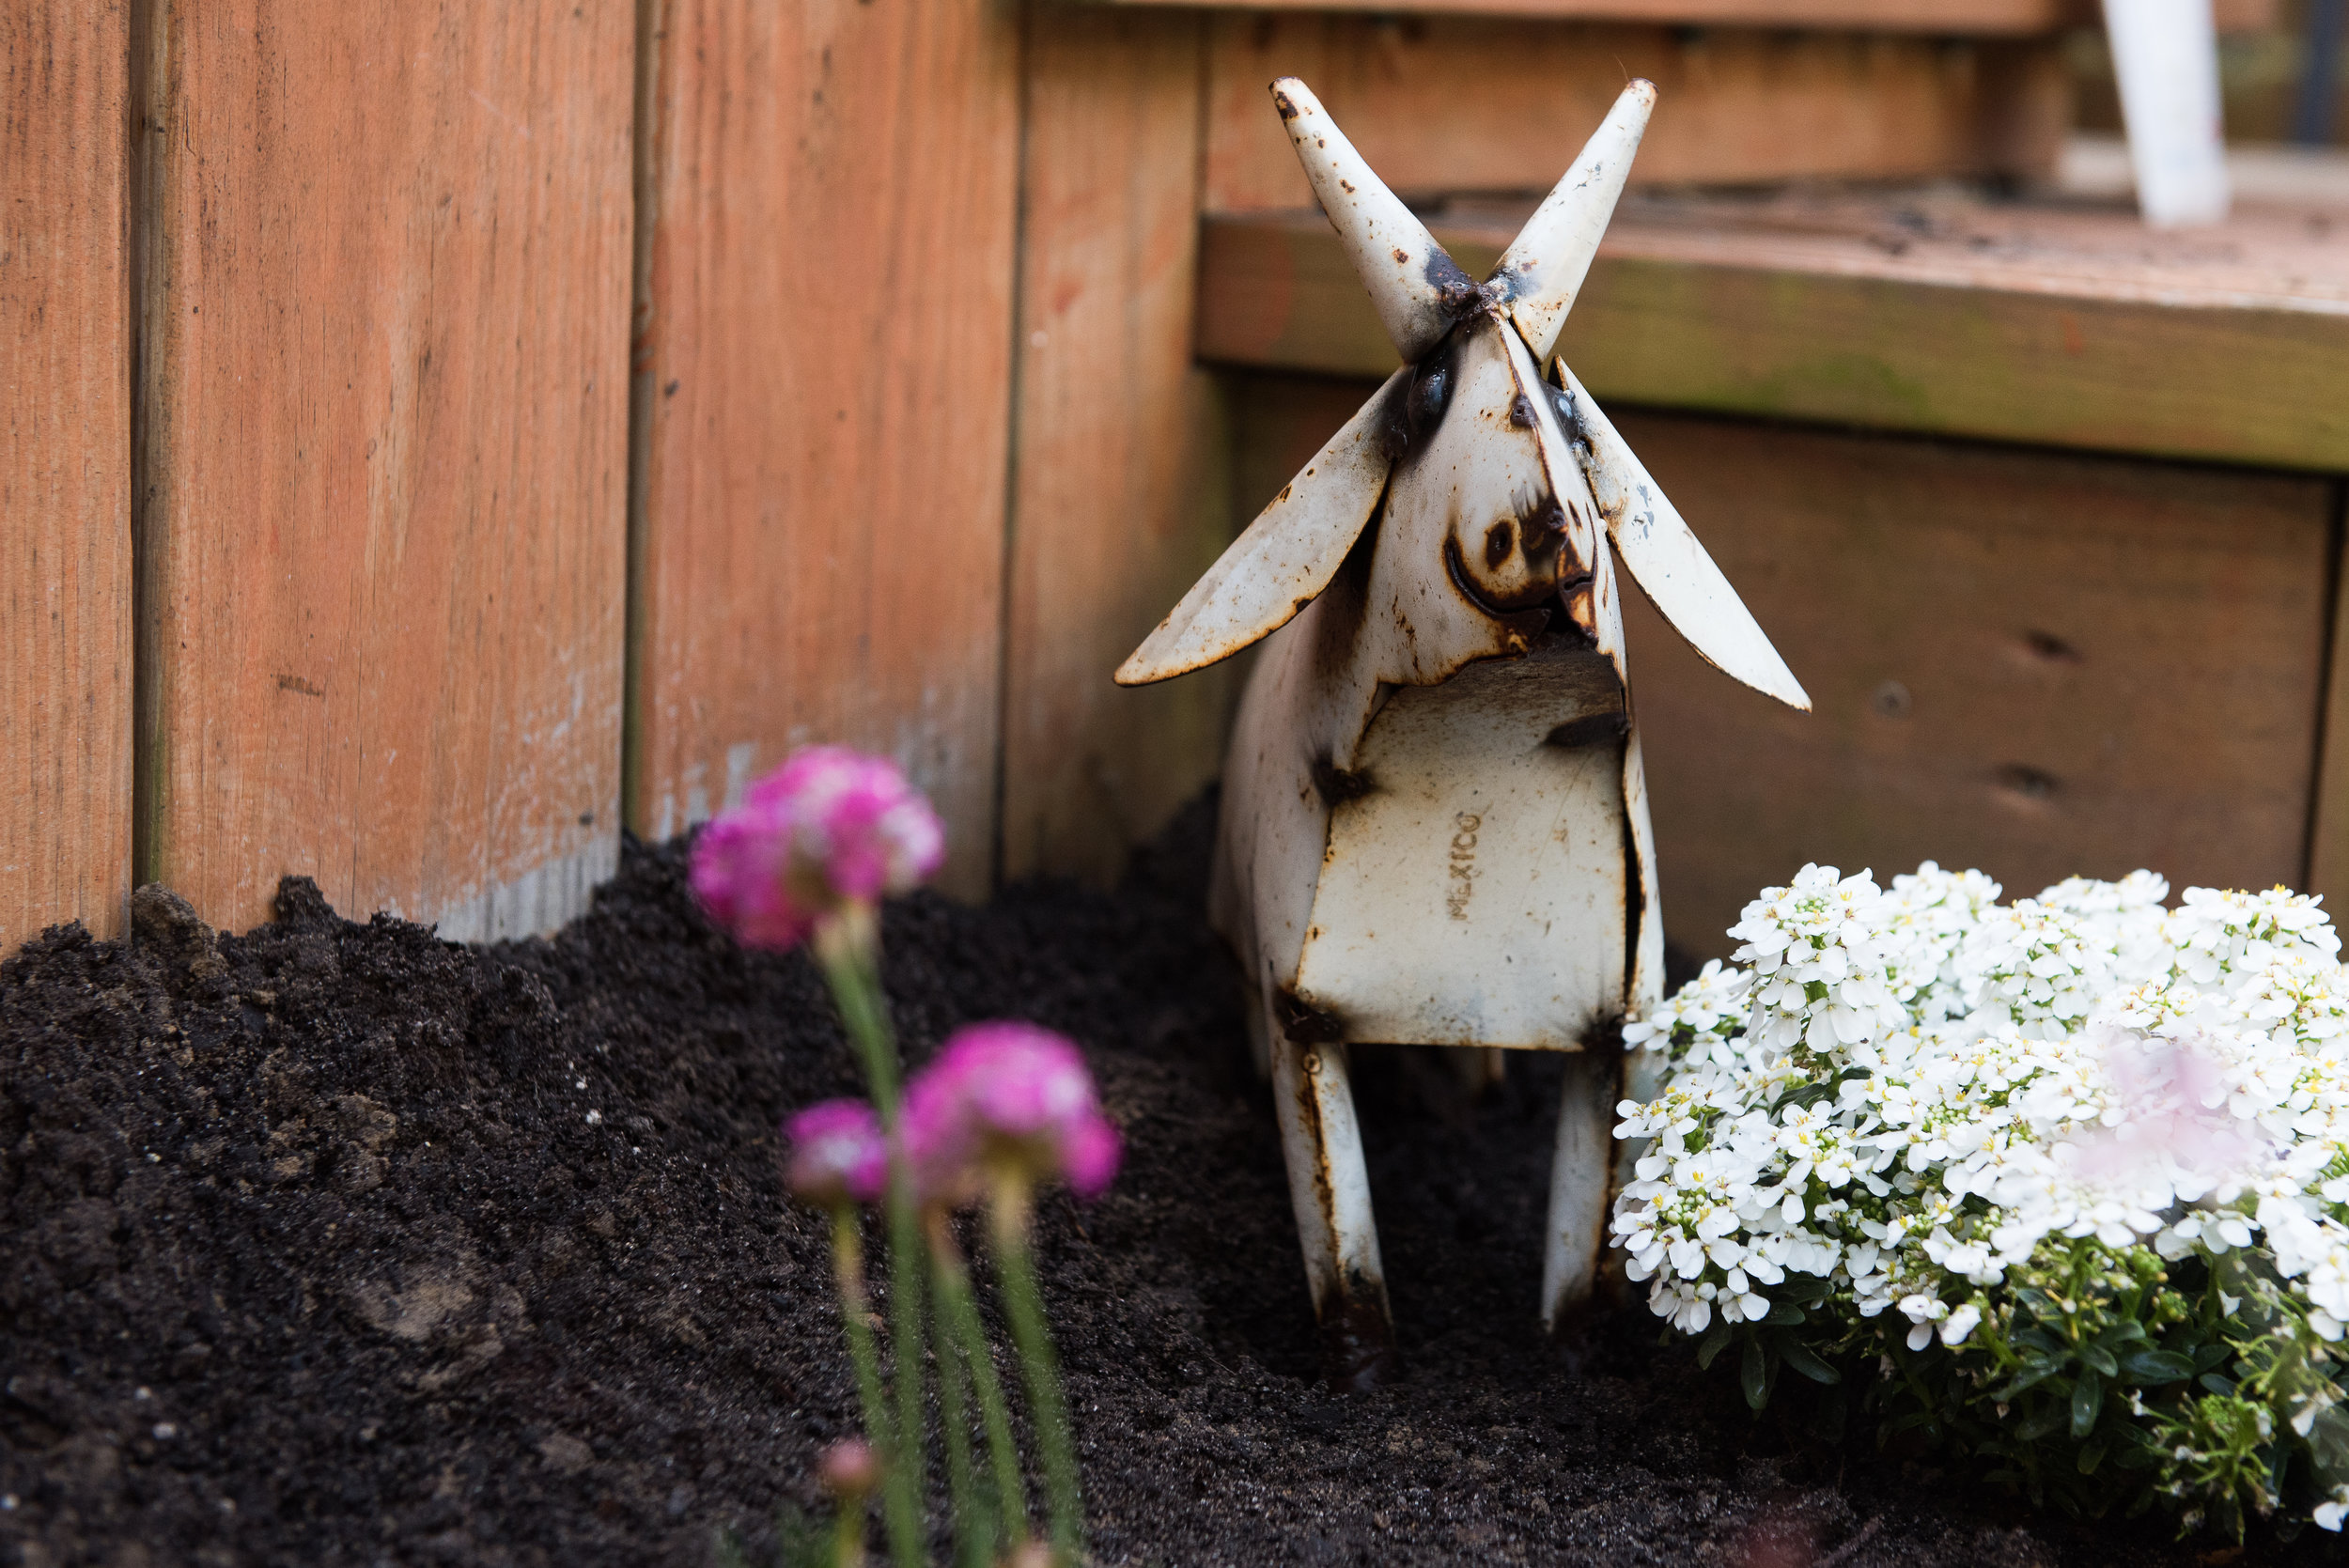 How to Plant a Bee Garden: DOs and DON'Ts